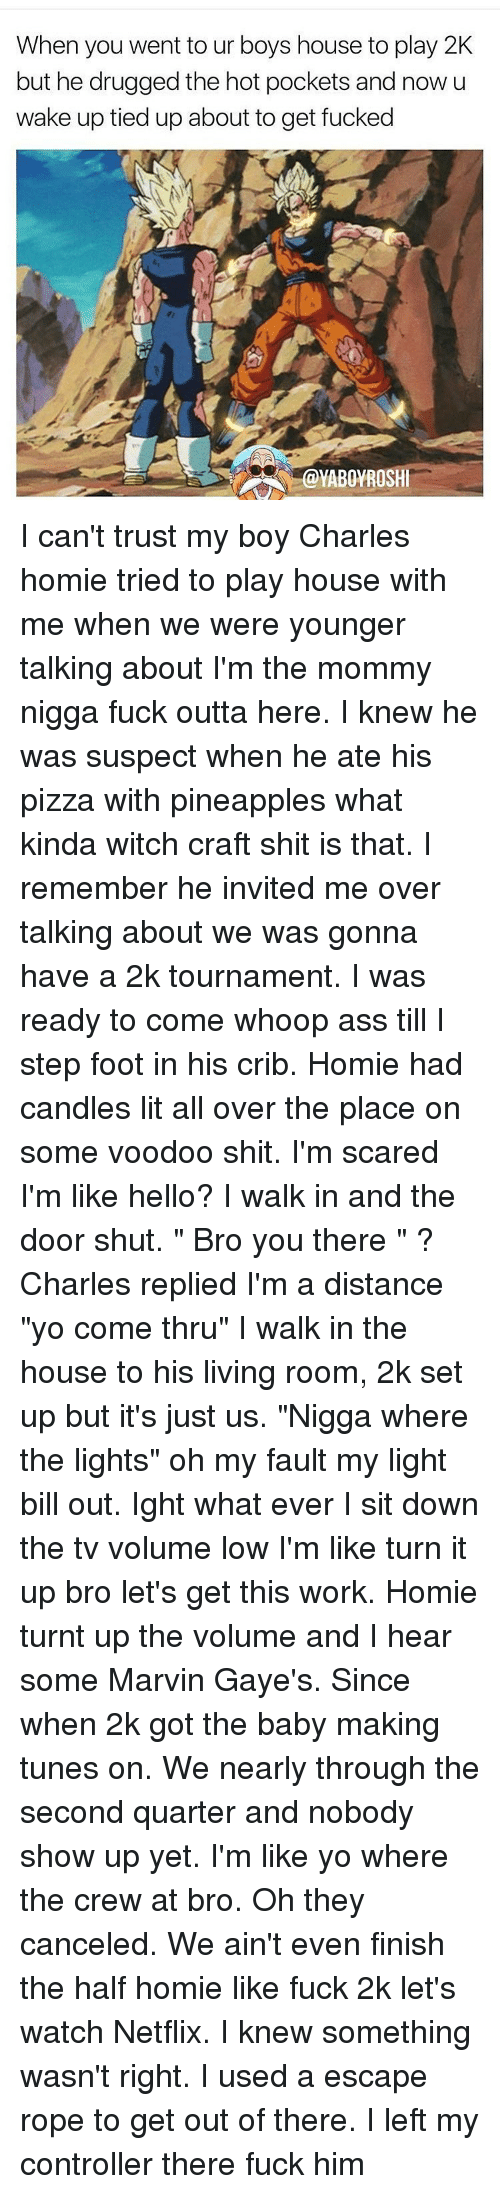 """Whoop Ass: When you went to ur boys house to play 2K  but he drugged the hot pockets and now u  wake up tied up about to get fucked  @YABOYROSHI I can't trust my boy Charles homie tried to play house with me when we were younger talking about I'm the mommy nigga fuck outta here. I knew he was suspect when he ate his pizza with pineapples what kinda witch craft shit is that. I remember he invited me over talking about we was gonna have a 2k tournament. I was ready to come whoop ass till I step foot in his crib. Homie had candles lit all over the place on some voodoo shit. I'm scared I'm like hello? I walk in and the door shut. """" Bro you there """" ? Charles replied I'm a distance """"yo come thru"""" I walk in the house to his living room, 2k set up but it's just us. """"Nigga where the lights"""" oh my fault my light bill out. Ight what ever I sit down the tv volume low I'm like turn it up bro let's get this work. Homie turnt up the volume and I hear some Marvin Gaye's. Since when 2k got the baby making tunes on. We nearly through the second quarter and nobody show up yet. I'm like yo where the crew at bro. Oh they canceled. We ain't even finish the half homie like fuck 2k let's watch Netflix. I knew something wasn't right. I used a escape rope to get out of there. I left my controller there fuck him"""